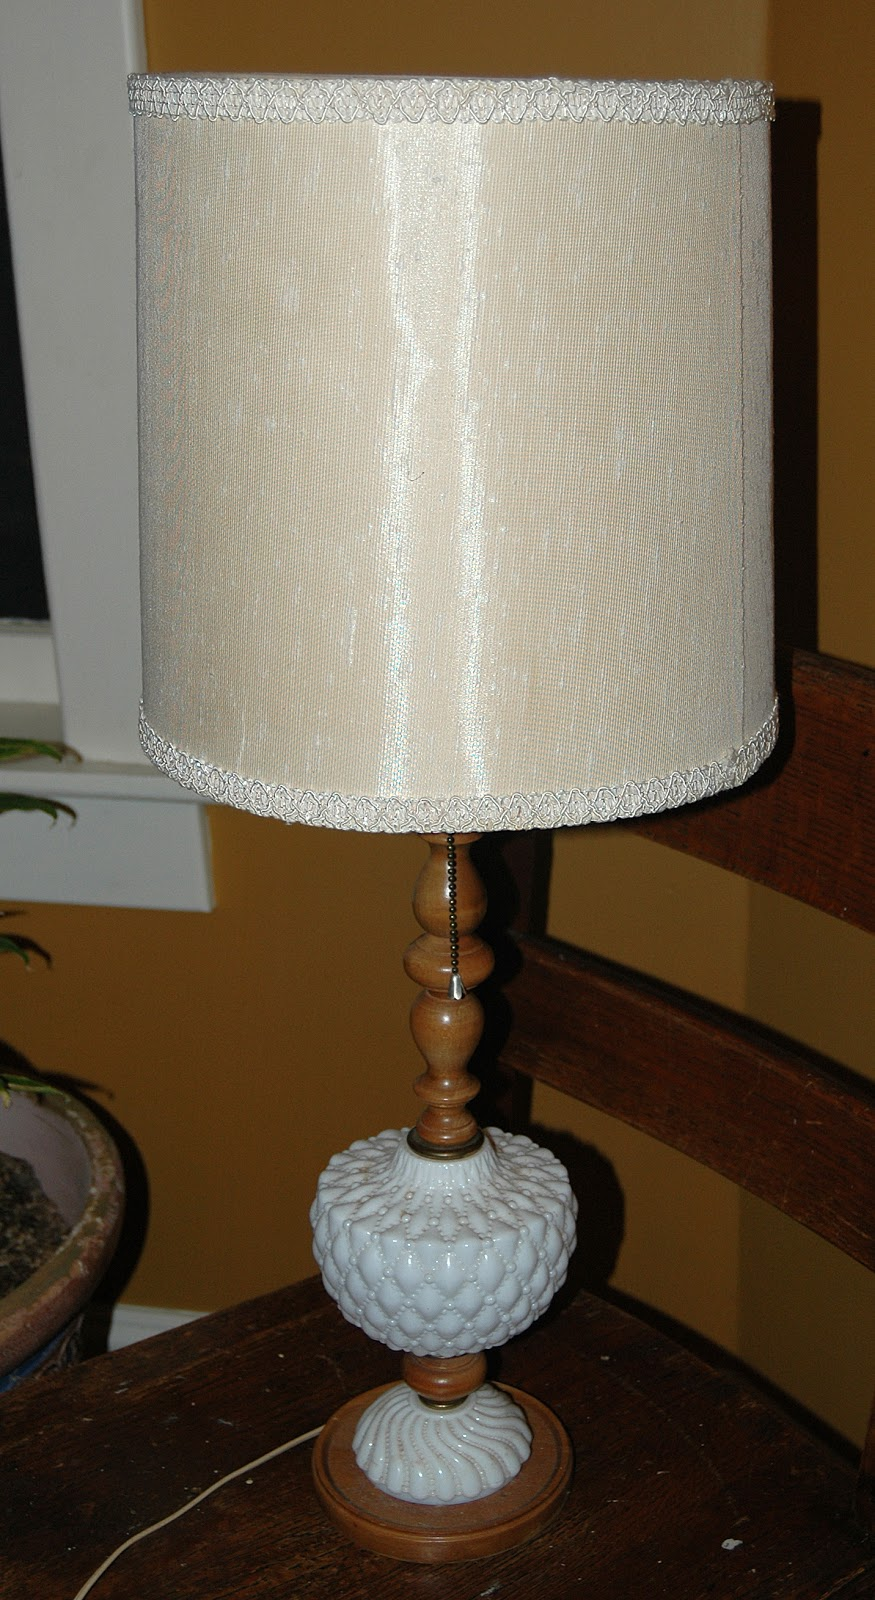 A Few Weeks Ago, I Went To An Estate Sale And Bought Two Matching Table  Lamps For Three Bucks. Hereu0027s One Of The Two, Before. (Click On Any Of The  Images To ...